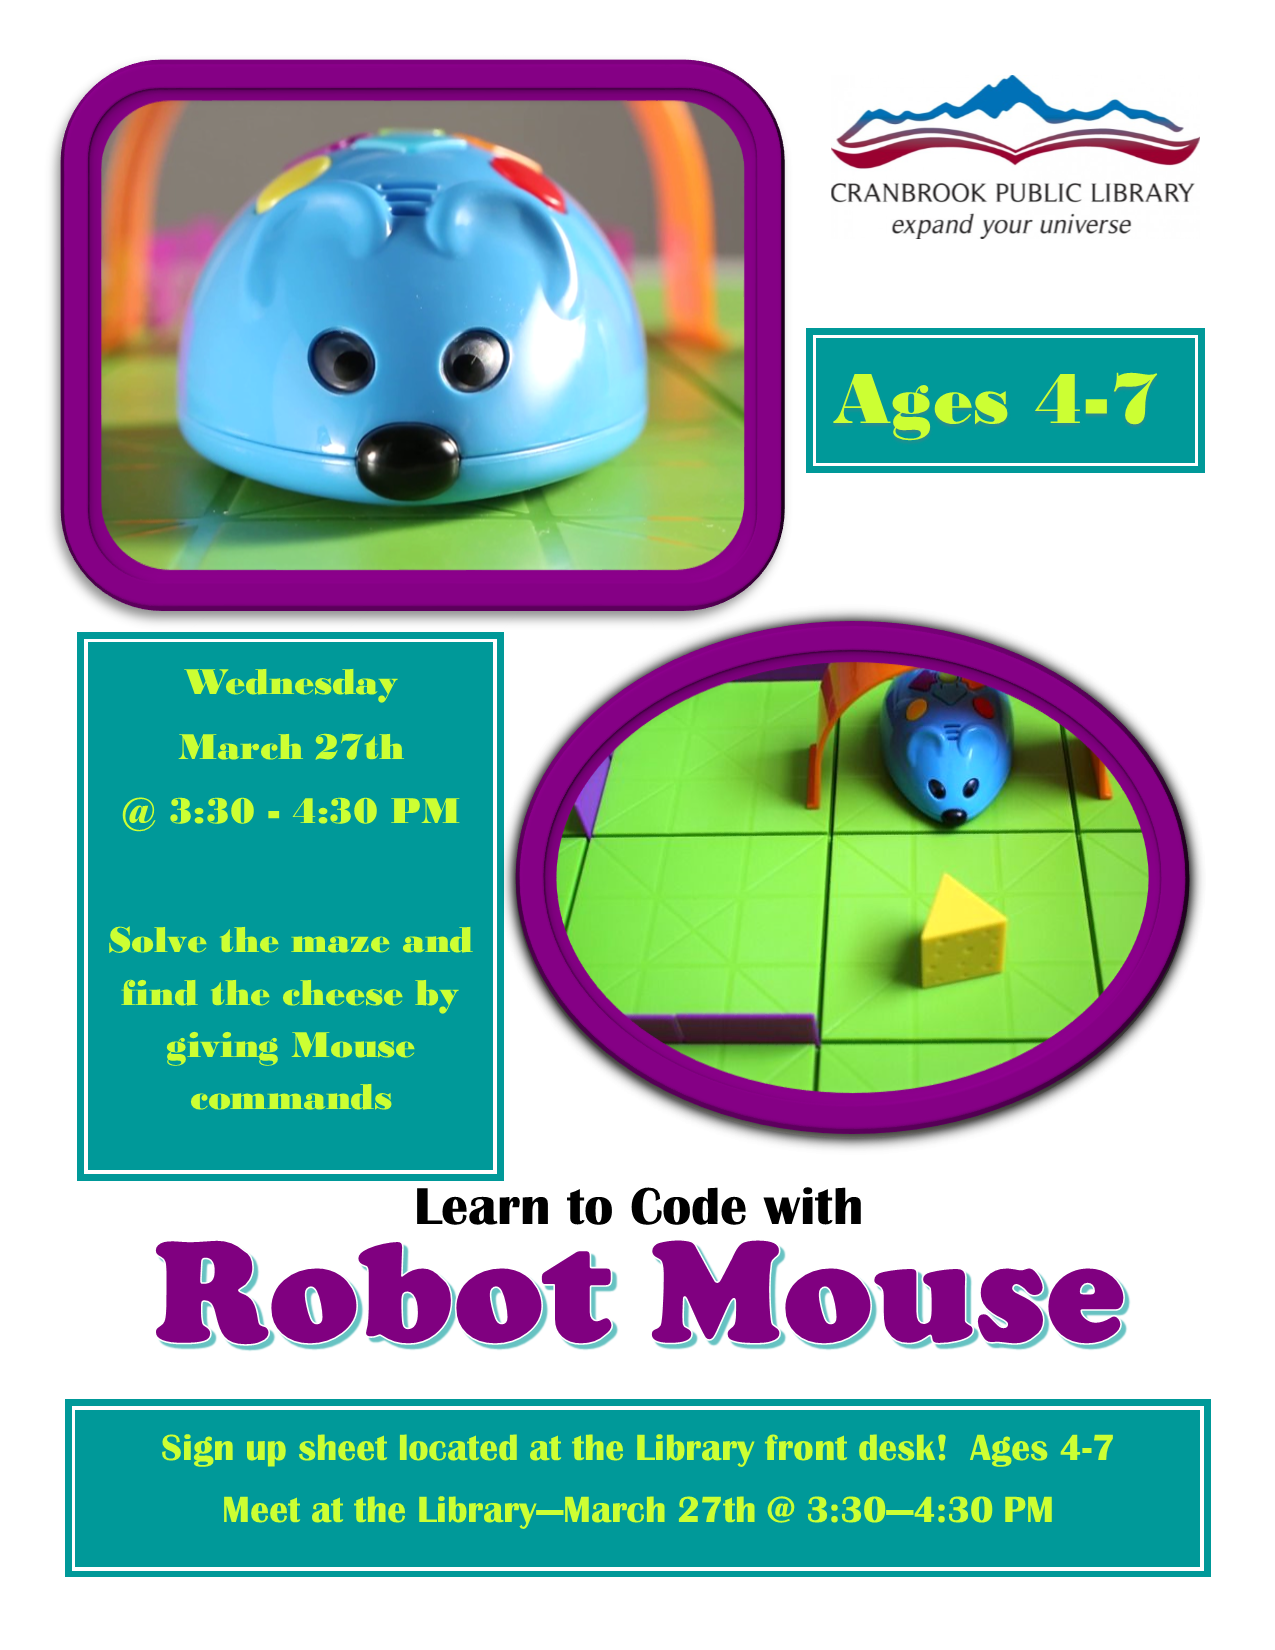 Learn to Code With Robot Mouse (Ages 4-7) @ Cranbrook Public Library